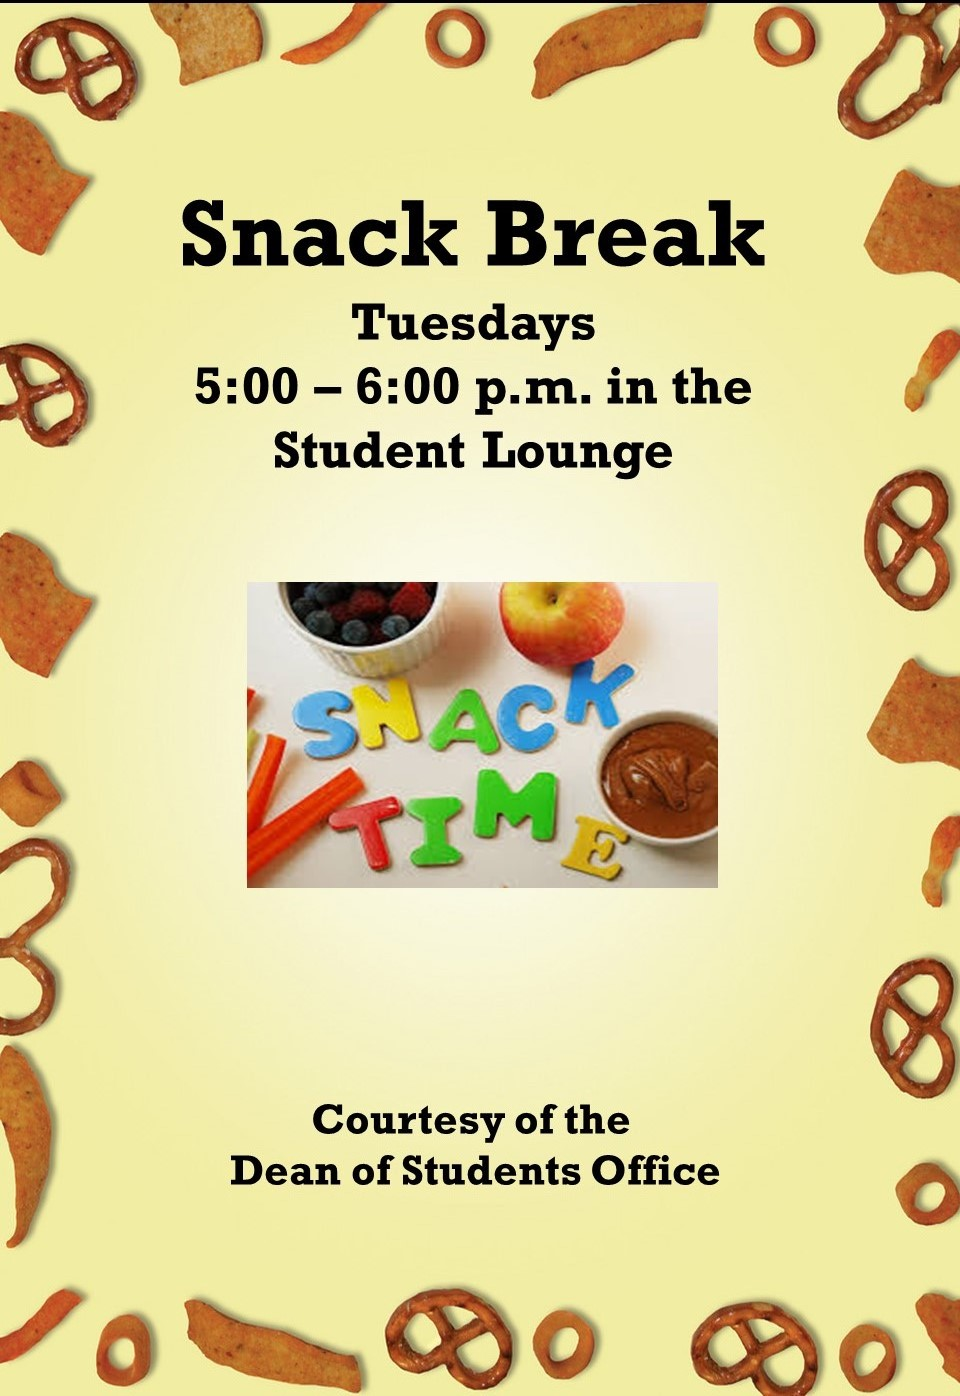 poster advertising the Tuesday snack breaks